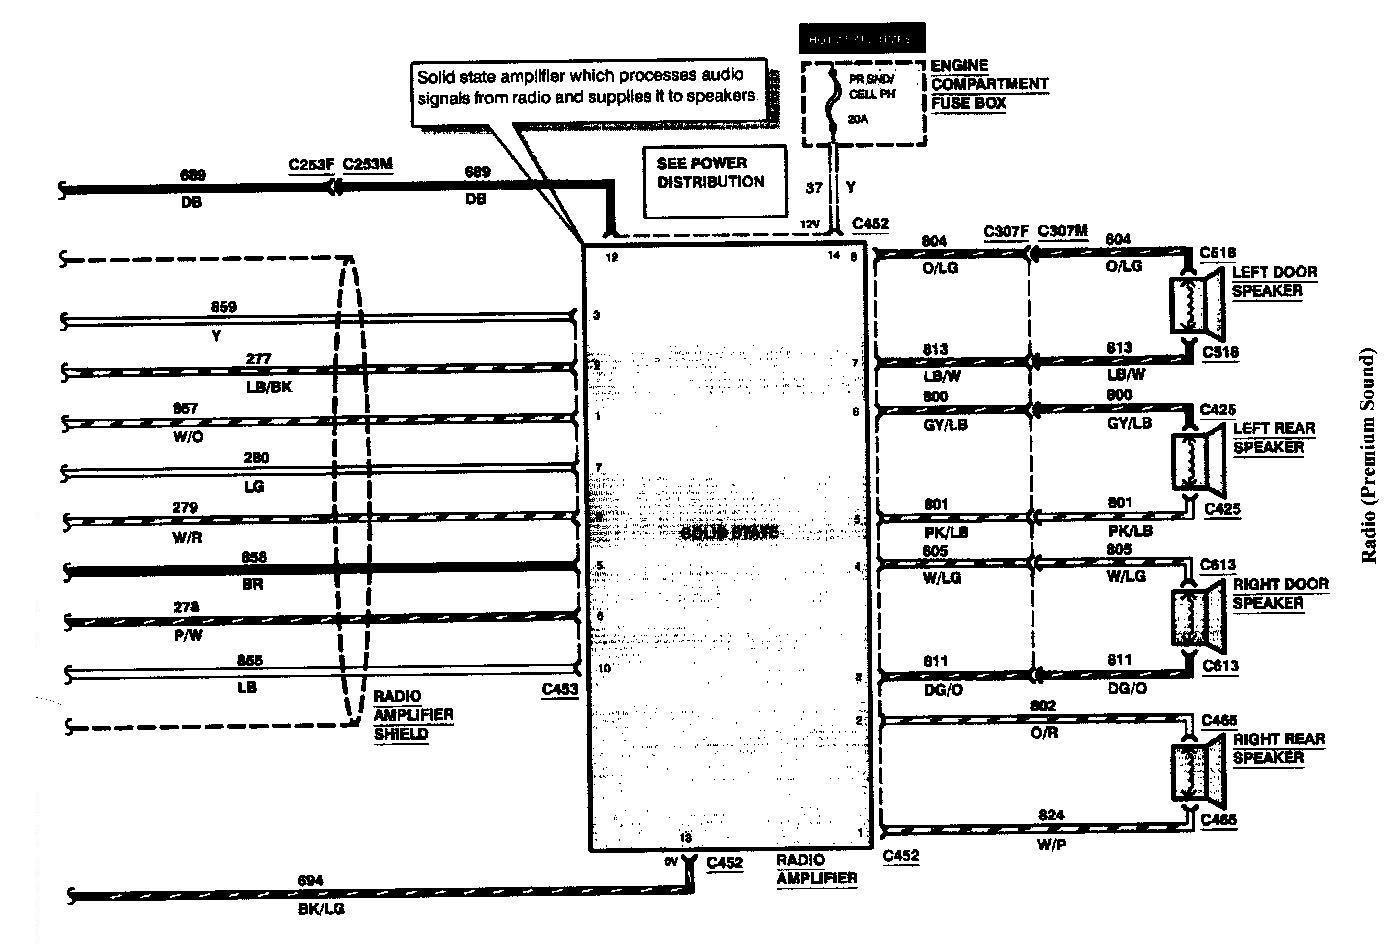 hight resolution of 96 lincoln radio wiring diagram wiring diagram blogs 1994 lincoln town car stereo wiring diagram 1994 lincoln town car radio wiring diagram